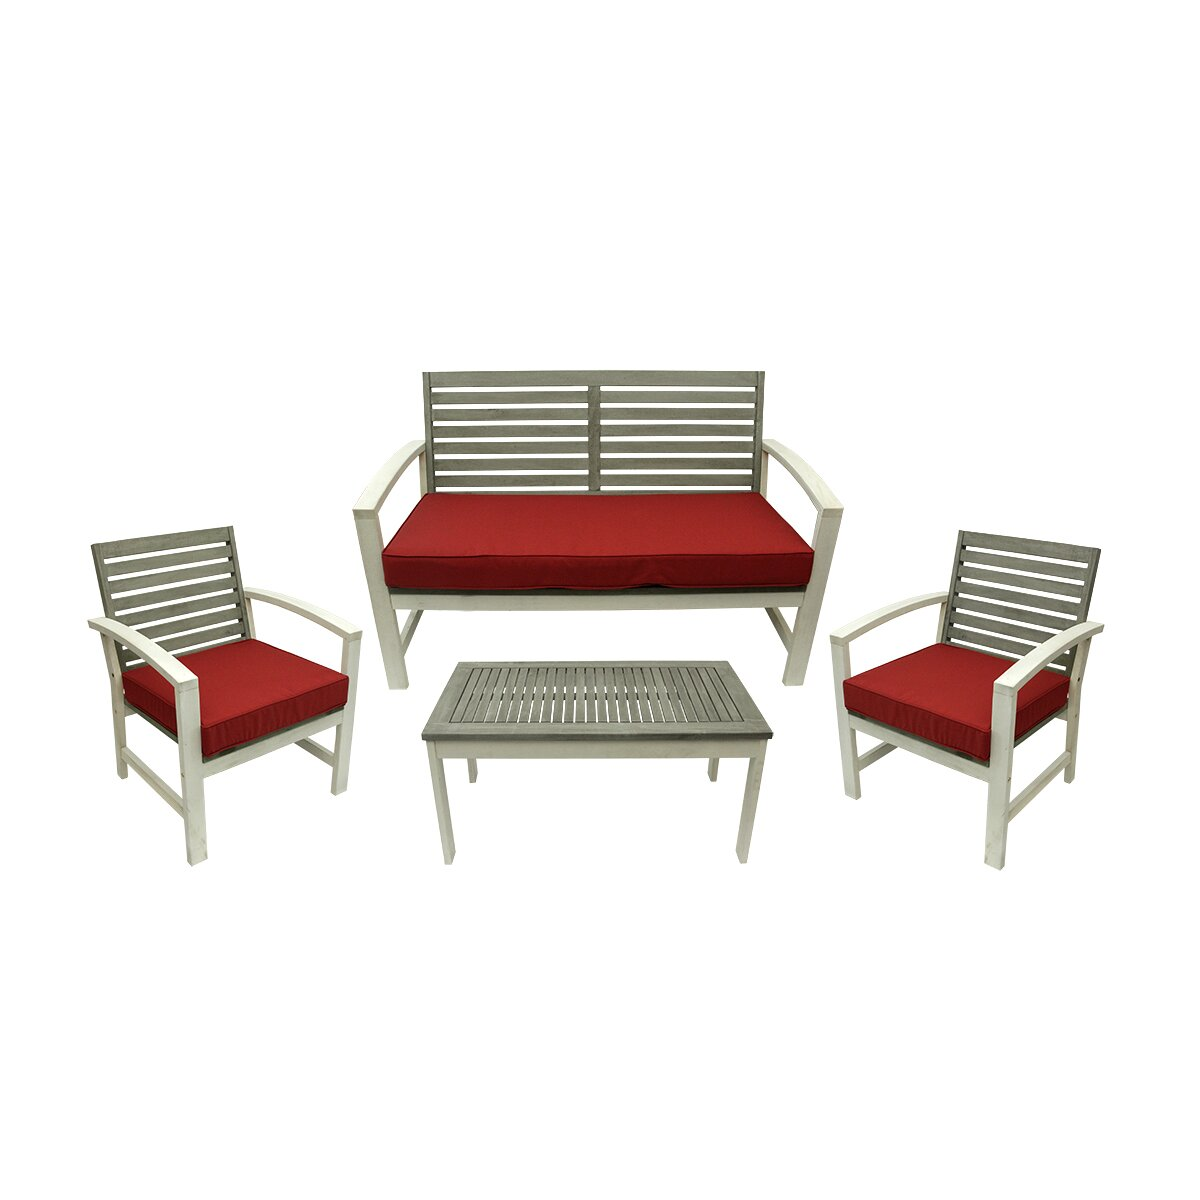 Northlight 4 piece acacia wood outdoor furniture set wayfair for Outdoor furniture wayfair